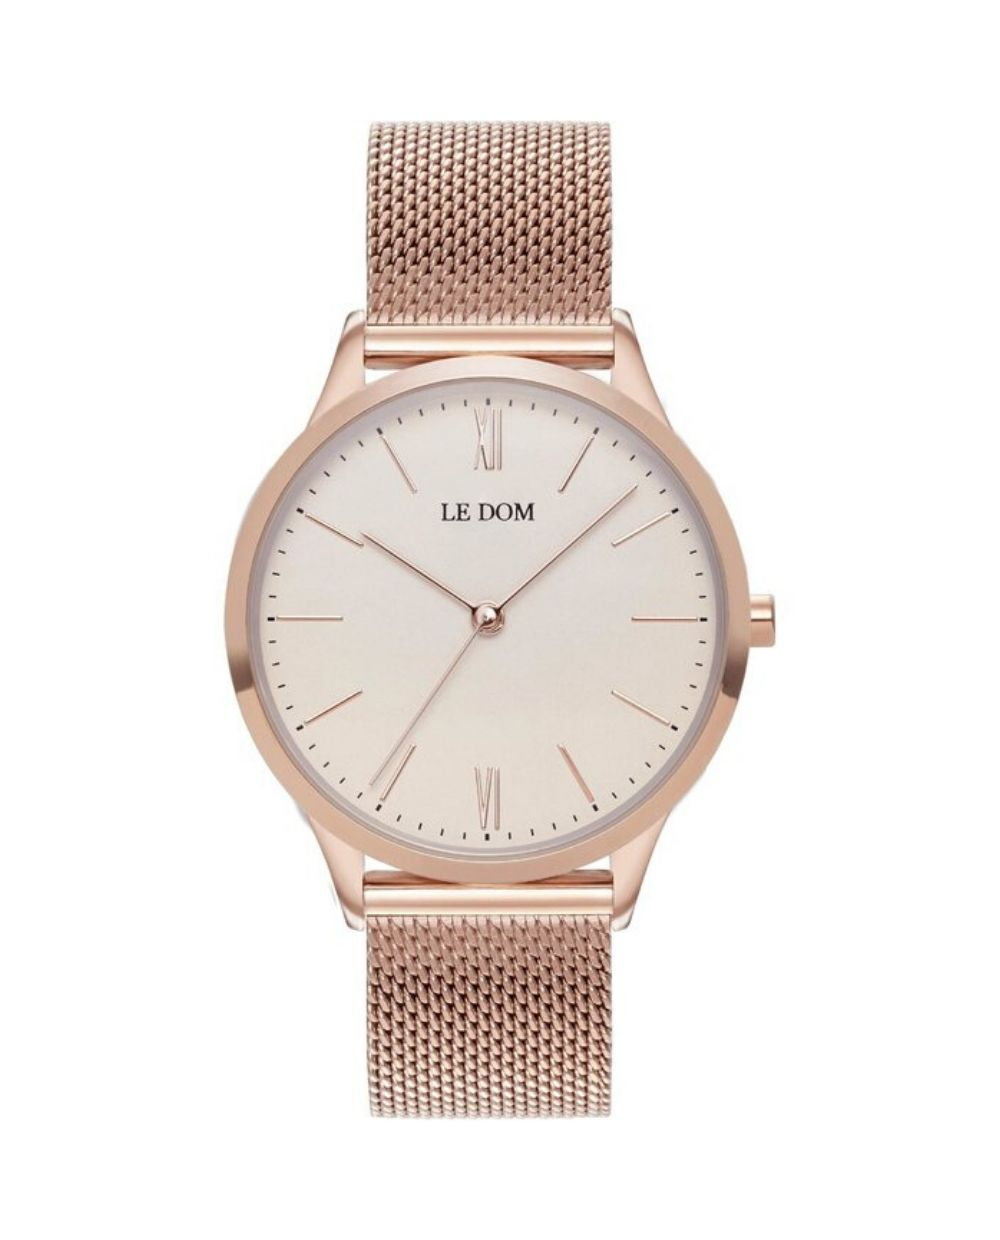 LE DOM Classic Rose Gold LD.1000-20 watch with knitted bracelet, pink gold. Find it at Atofio in Korydallos.